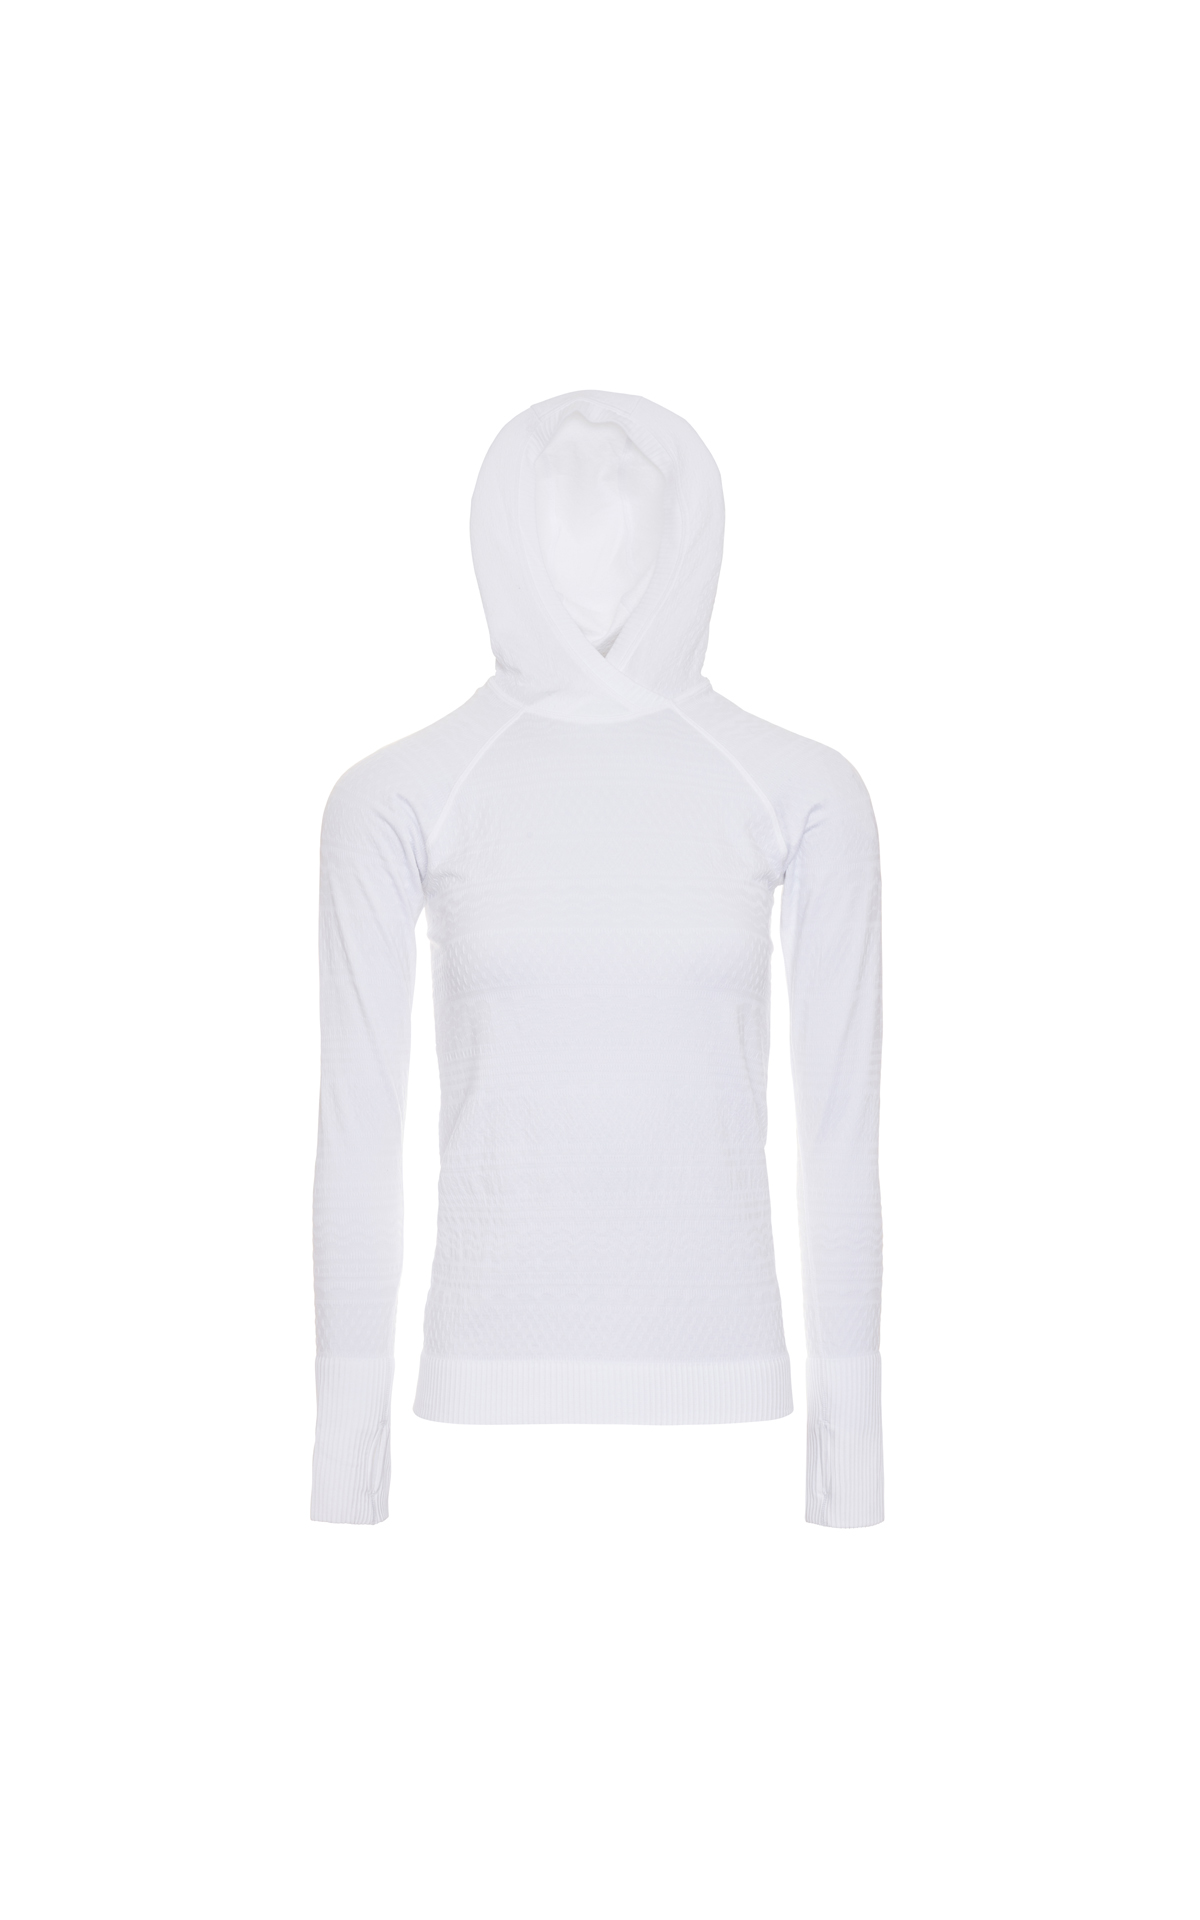 Lululemon Restless hoodie from Bicester Village